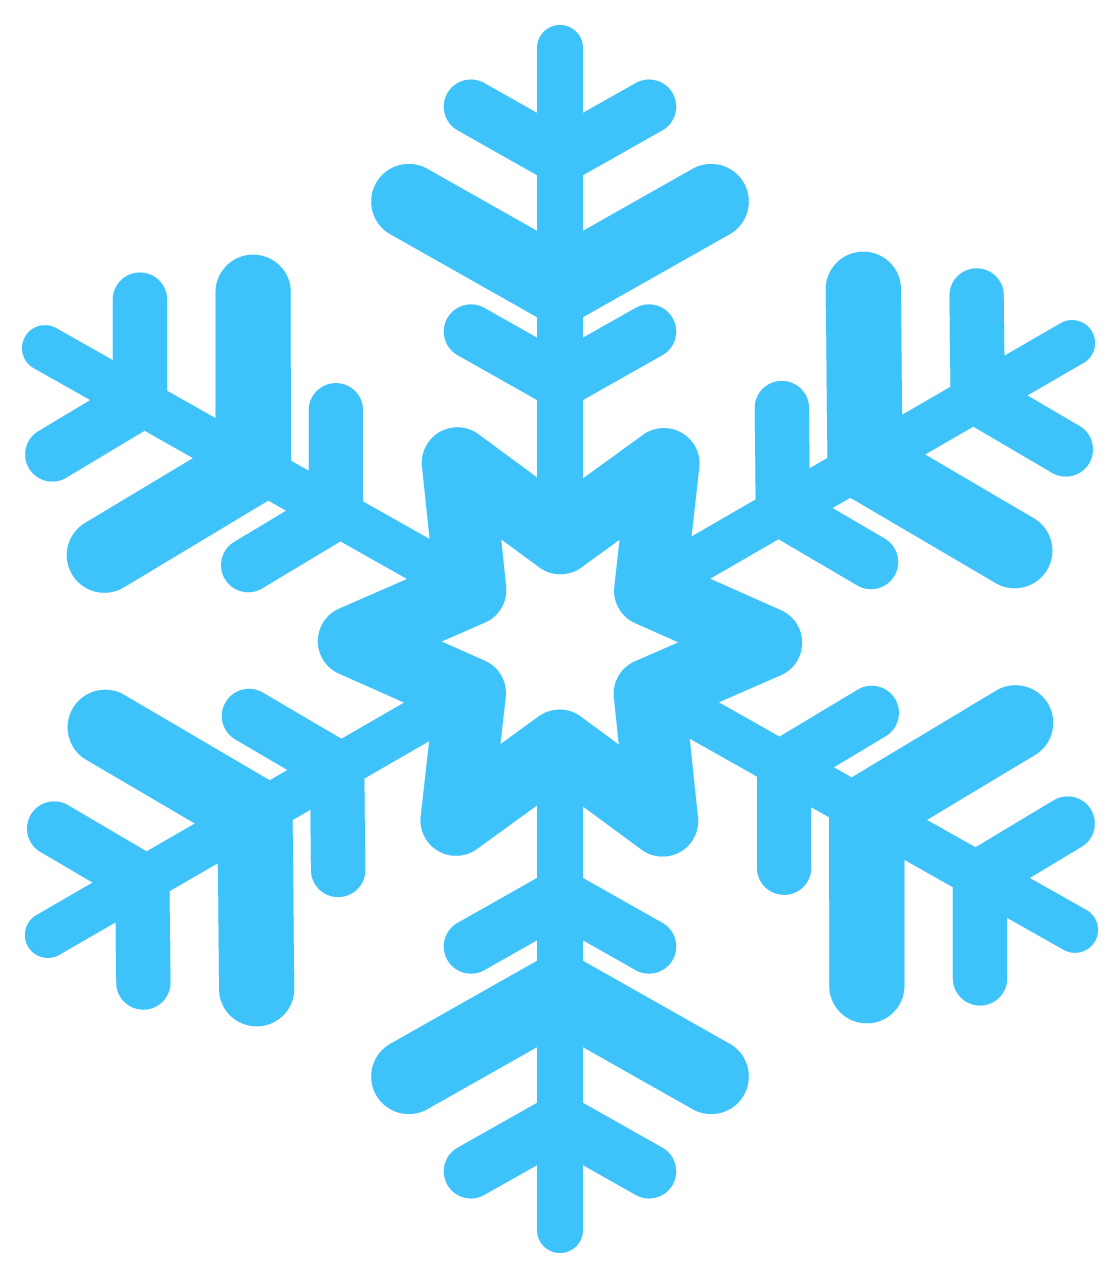 Simple Blue Snowflakes Png image #41265